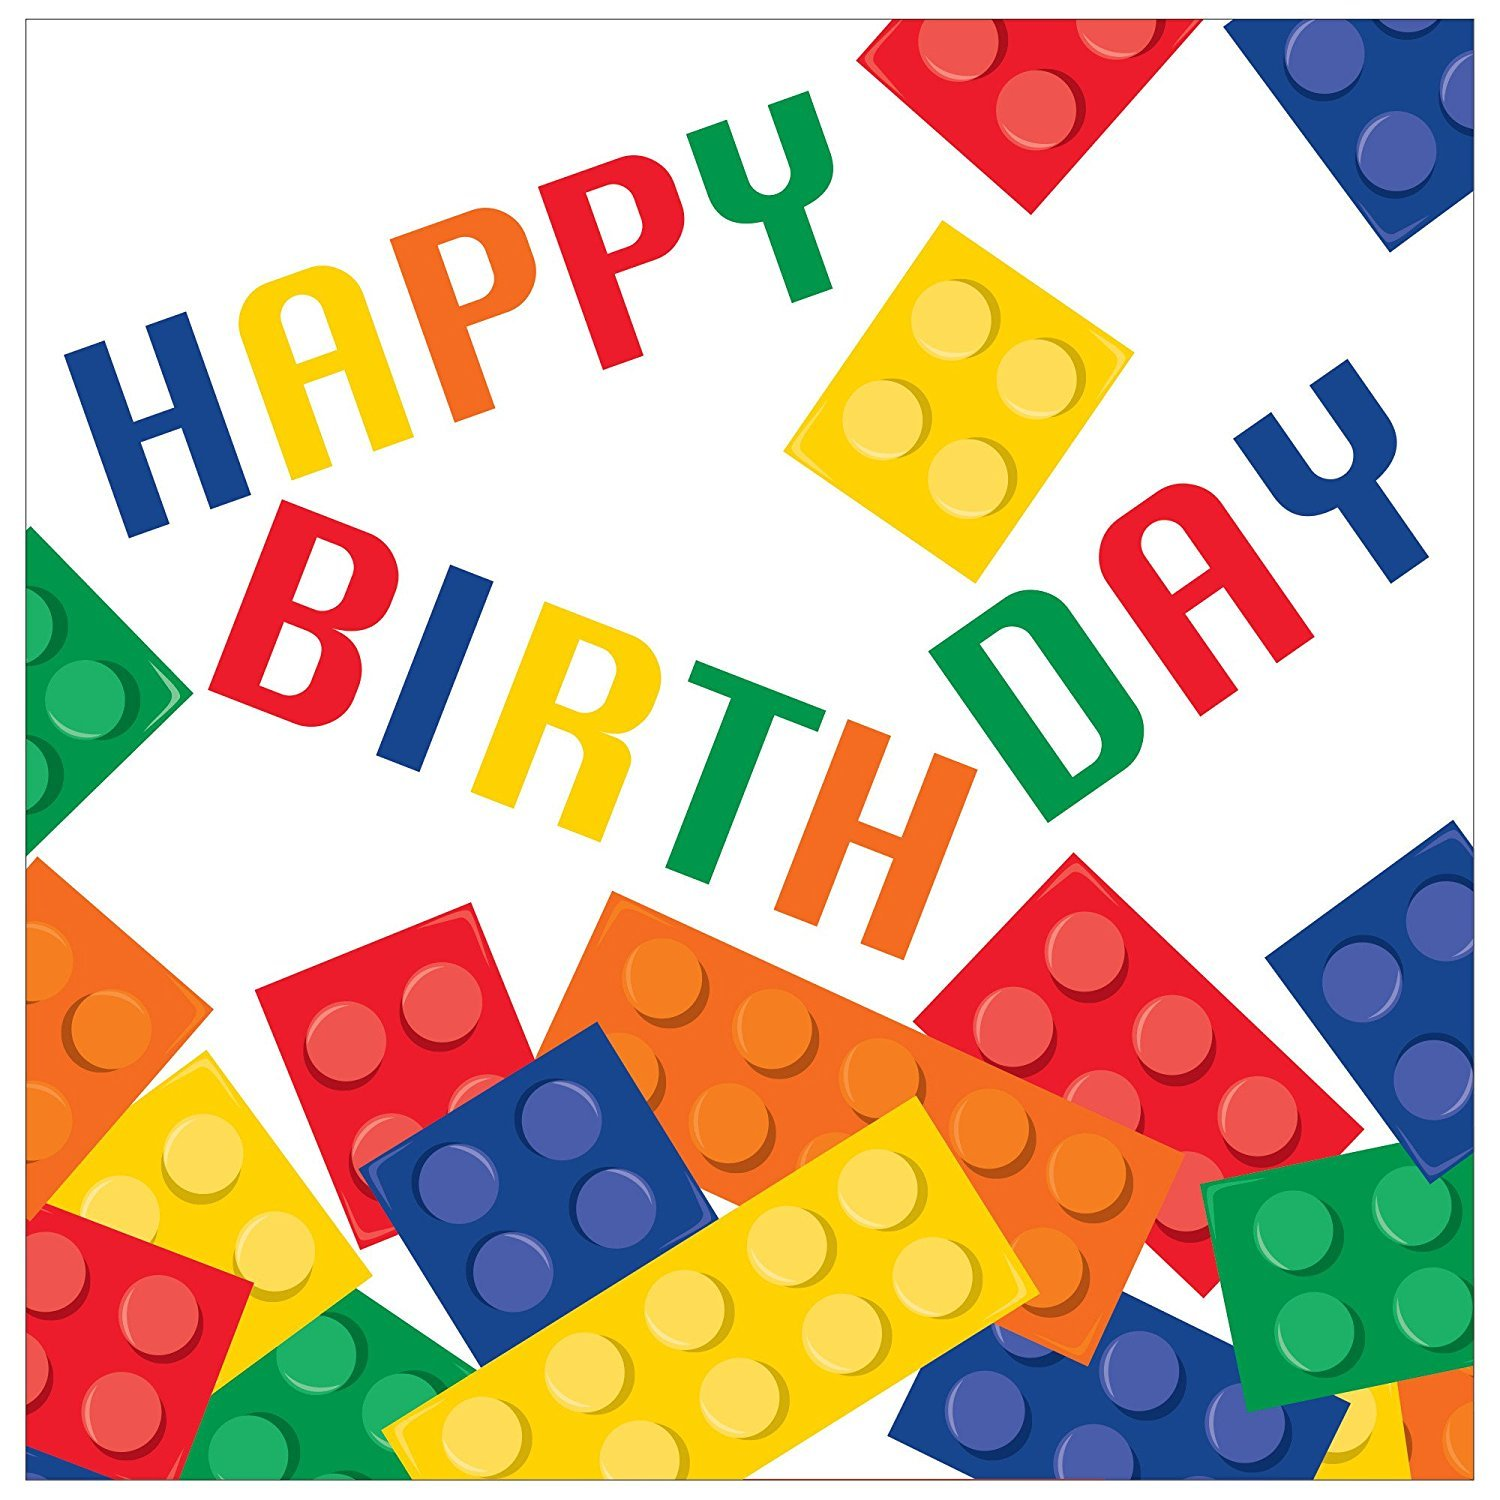 Creative Converting 16-Count 3-Ply Lunch Napkins with Happy Birthday (48 Pack)